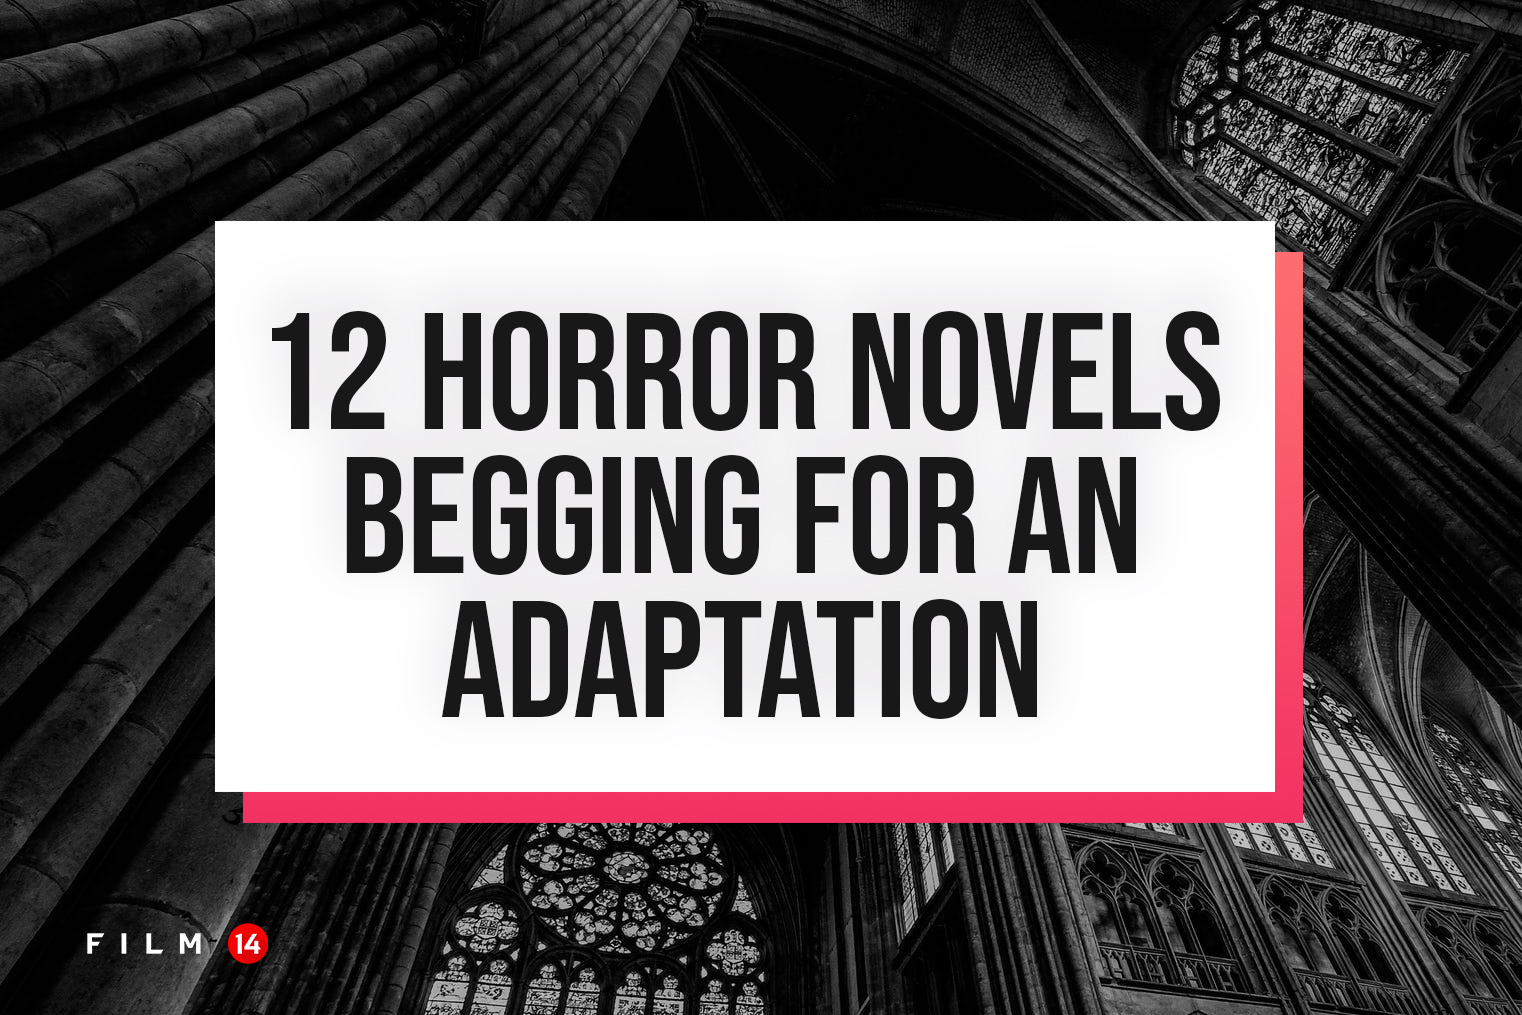 horror novels adaptation